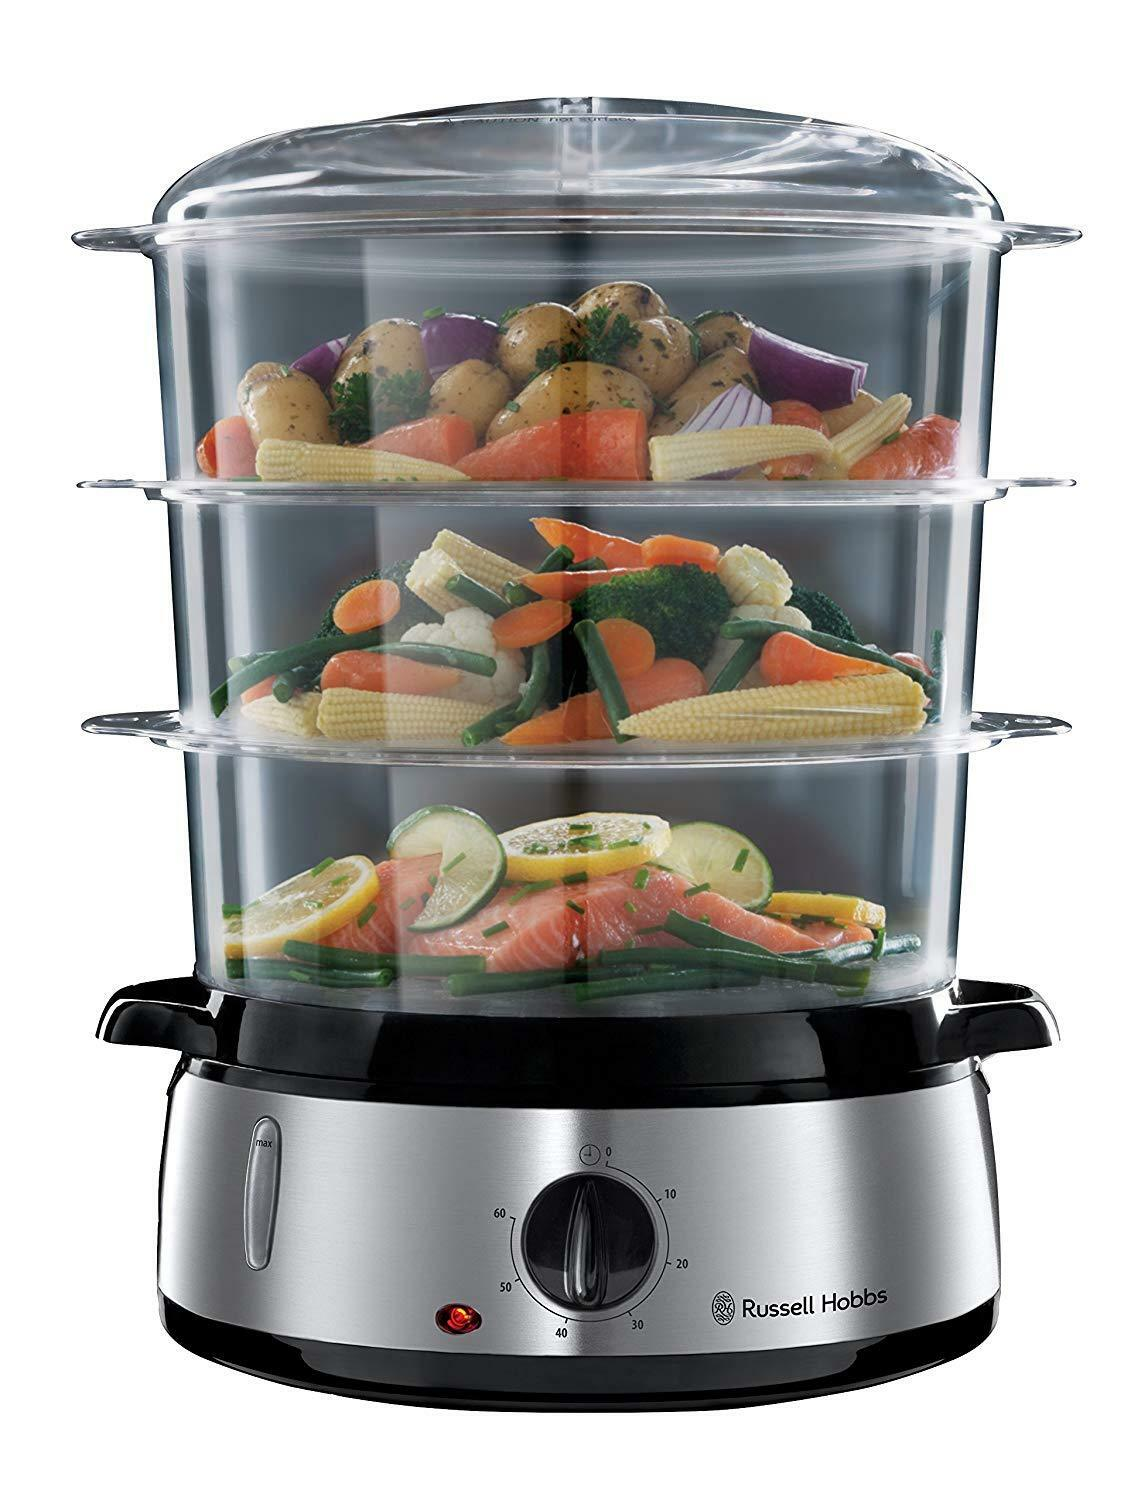 Russell Hobbs Cook @ Home 800W - 9L